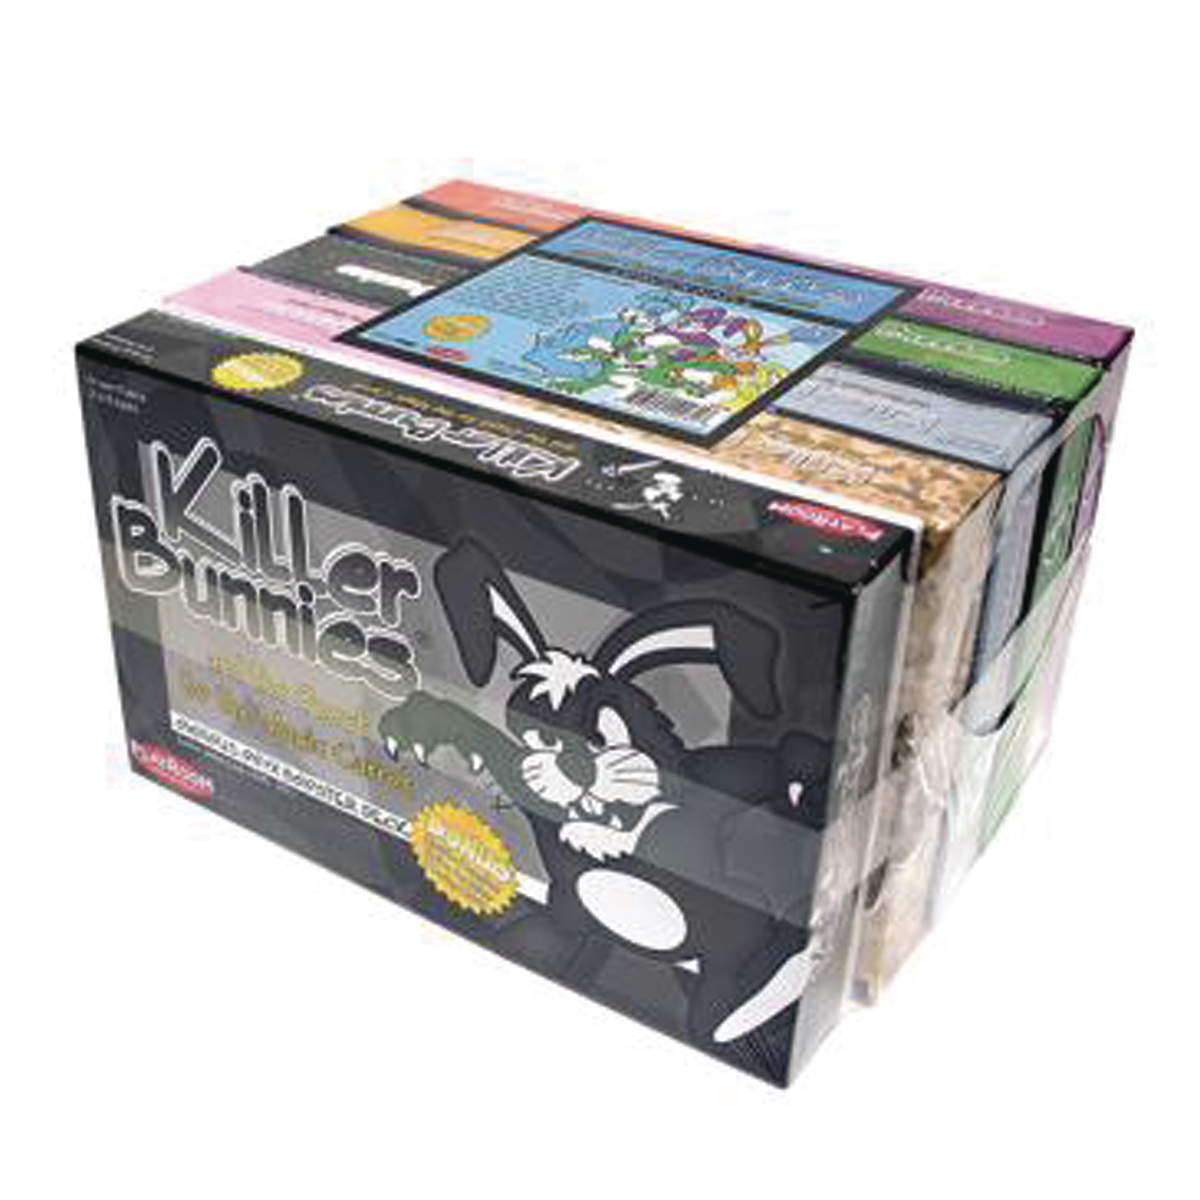 KILLER BUNNIES QUEST EXP BUNDLE